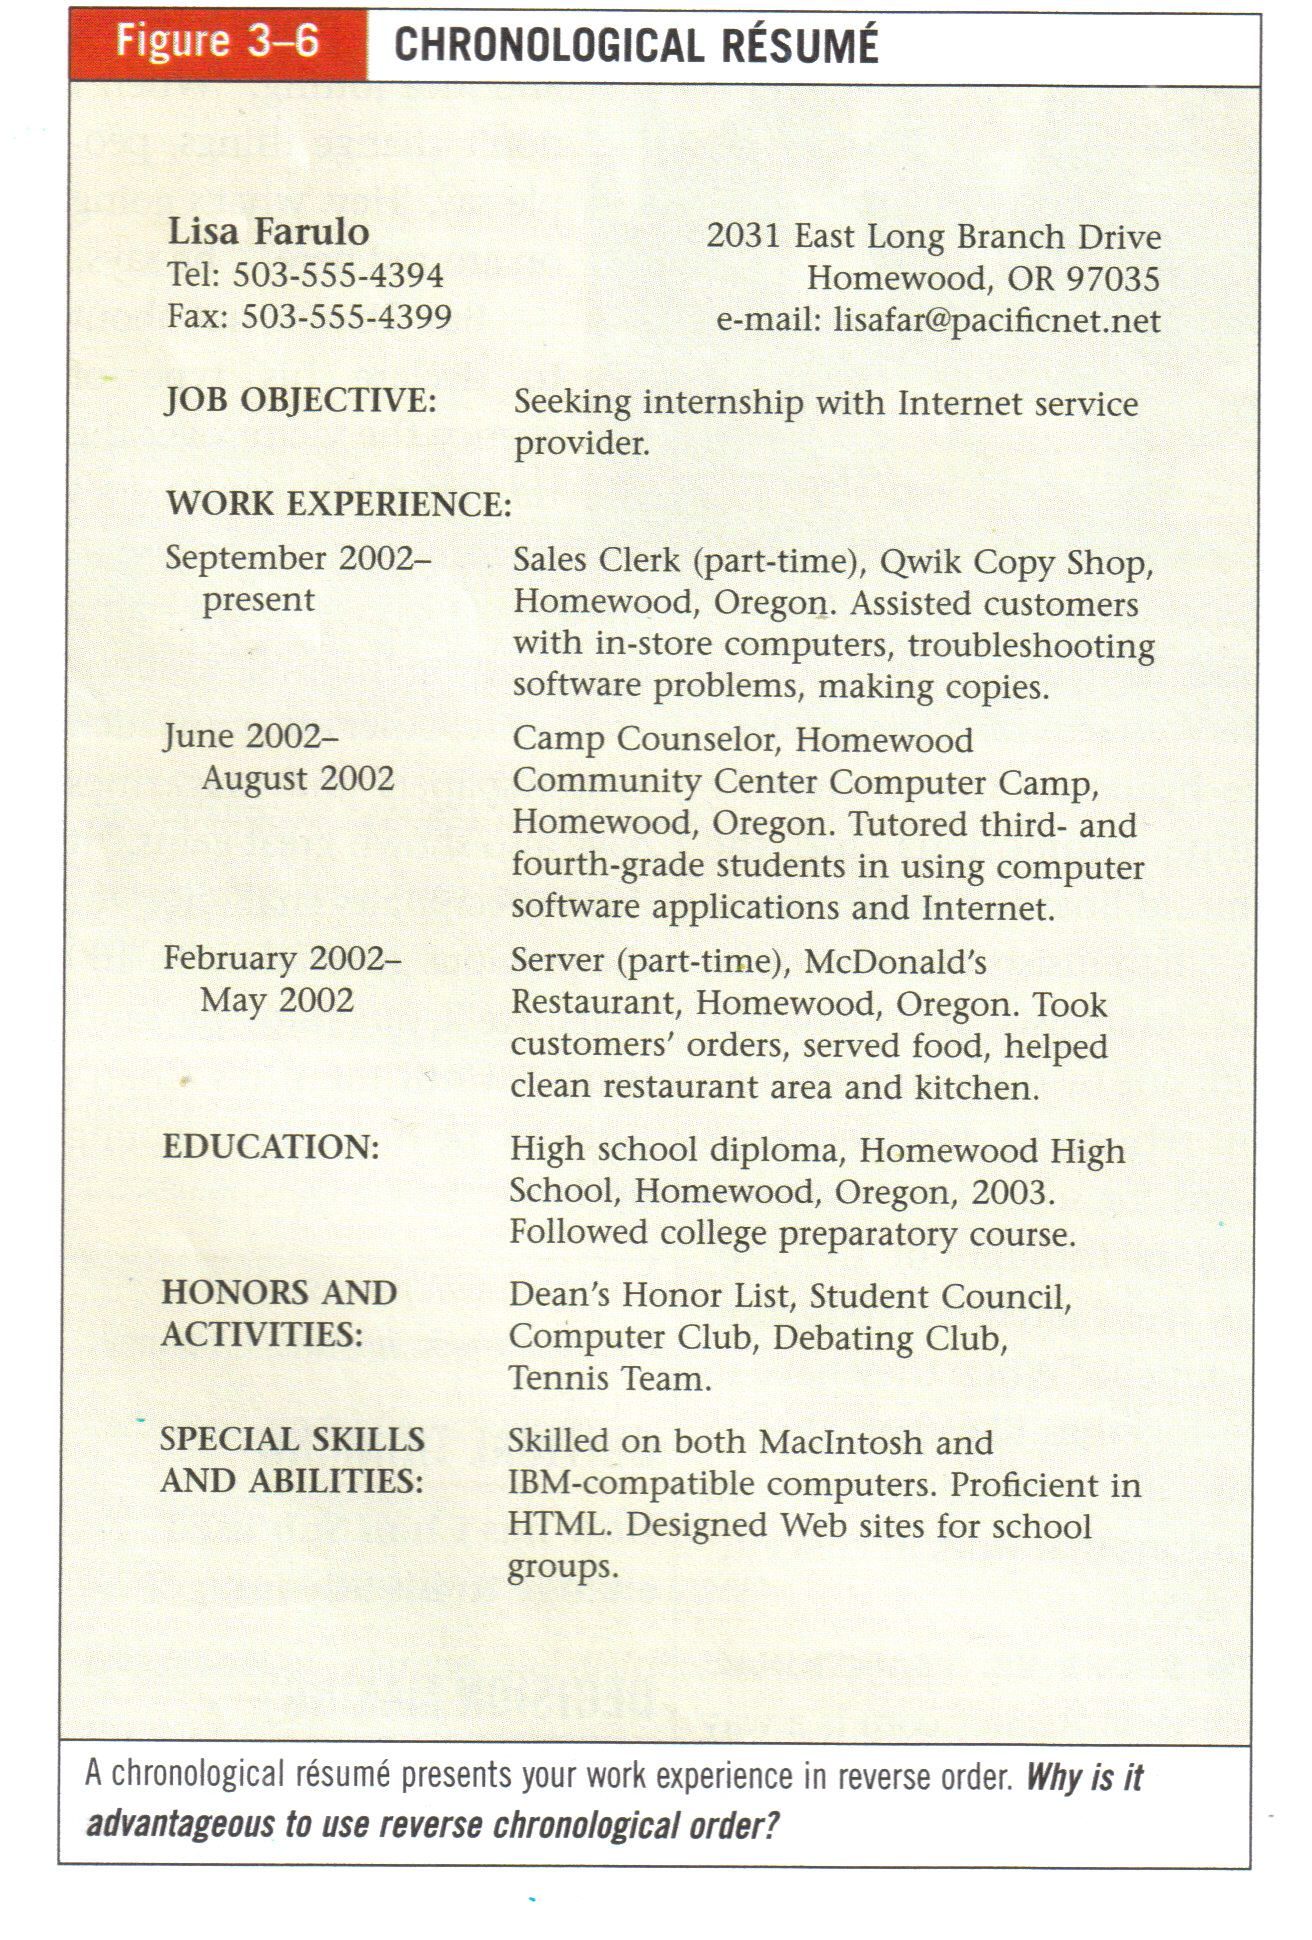 Chronological Resume Template Sample Chronological Resume  Career Development Teaching Ideas